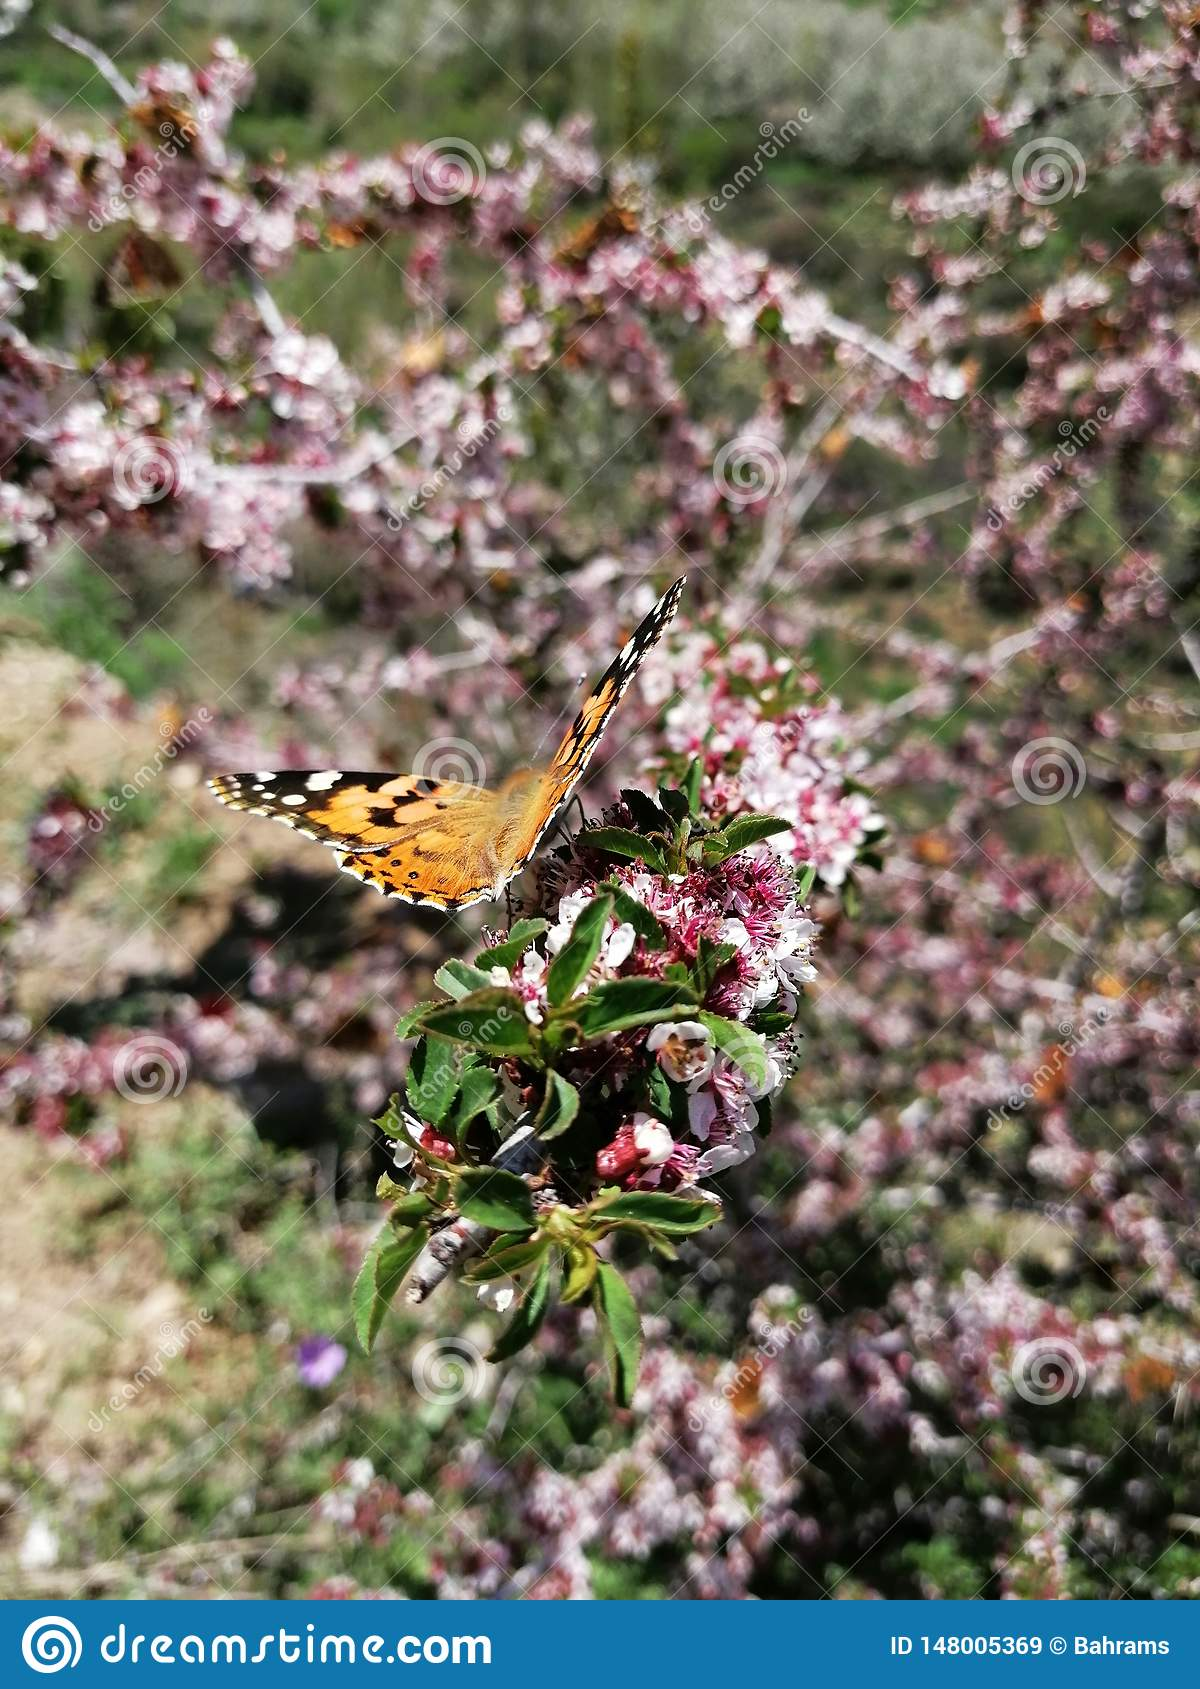 Beautiful Butterfly on the flowers of a wild tree